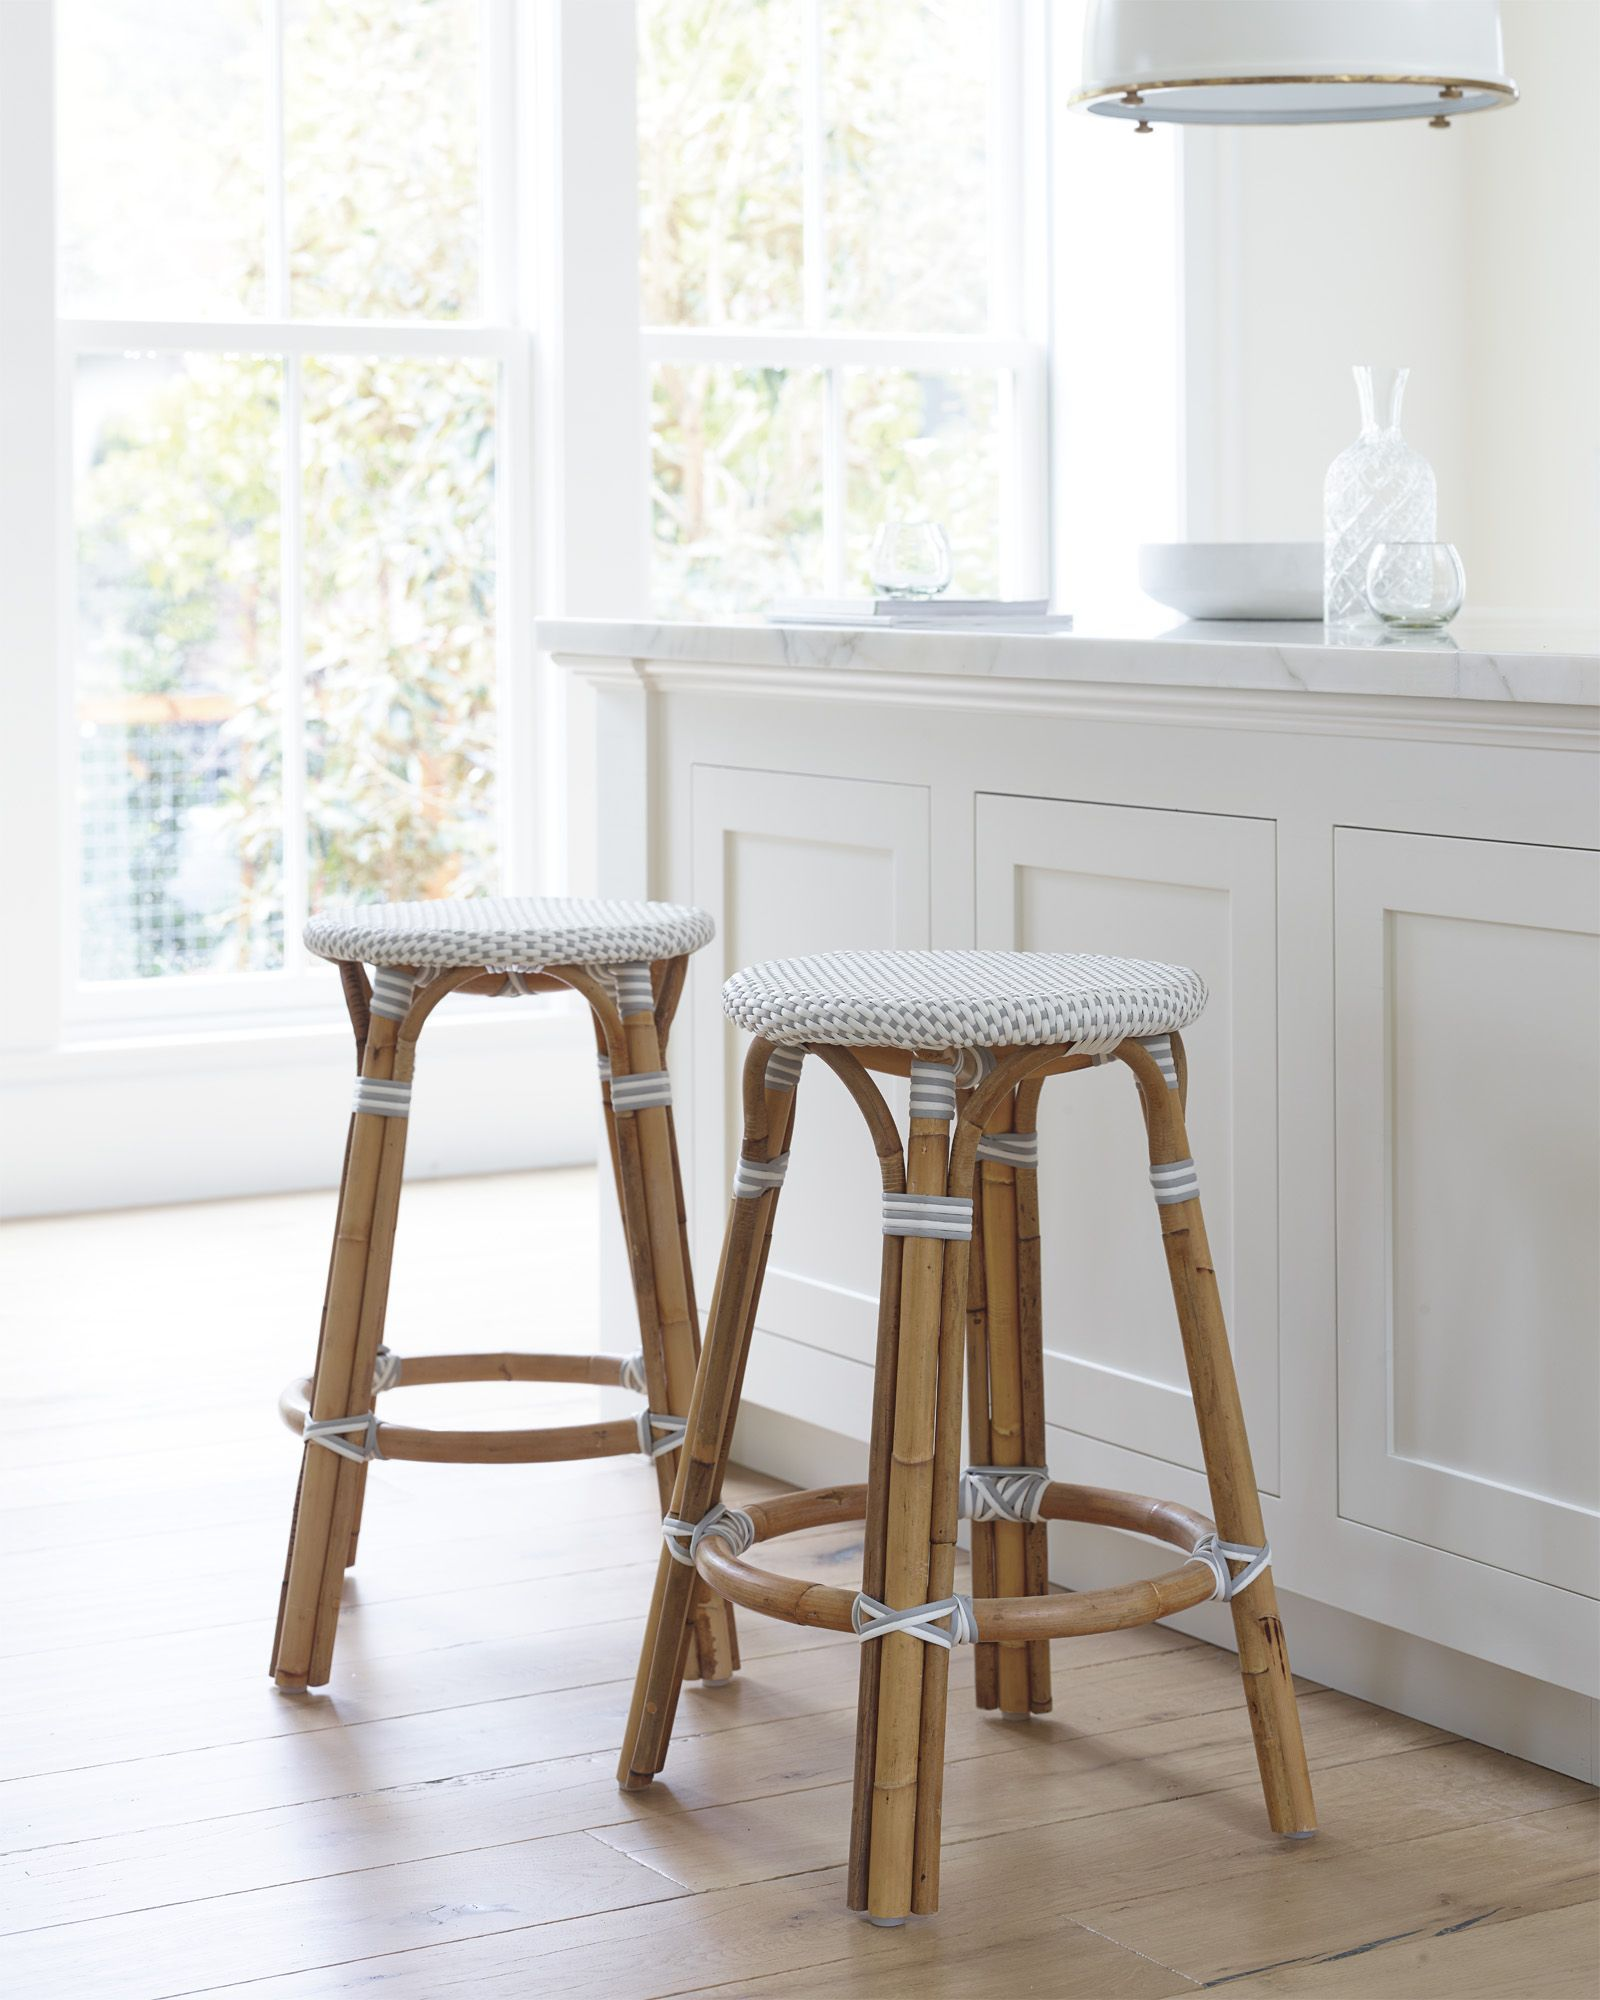 Get Inspired By These Kitchen Counters And Kitchen Stools And Add Some Of These Designs To Your Own Ho Counter Stools Backless Counter Stools White Bar Stools Designer kitchen counter stools